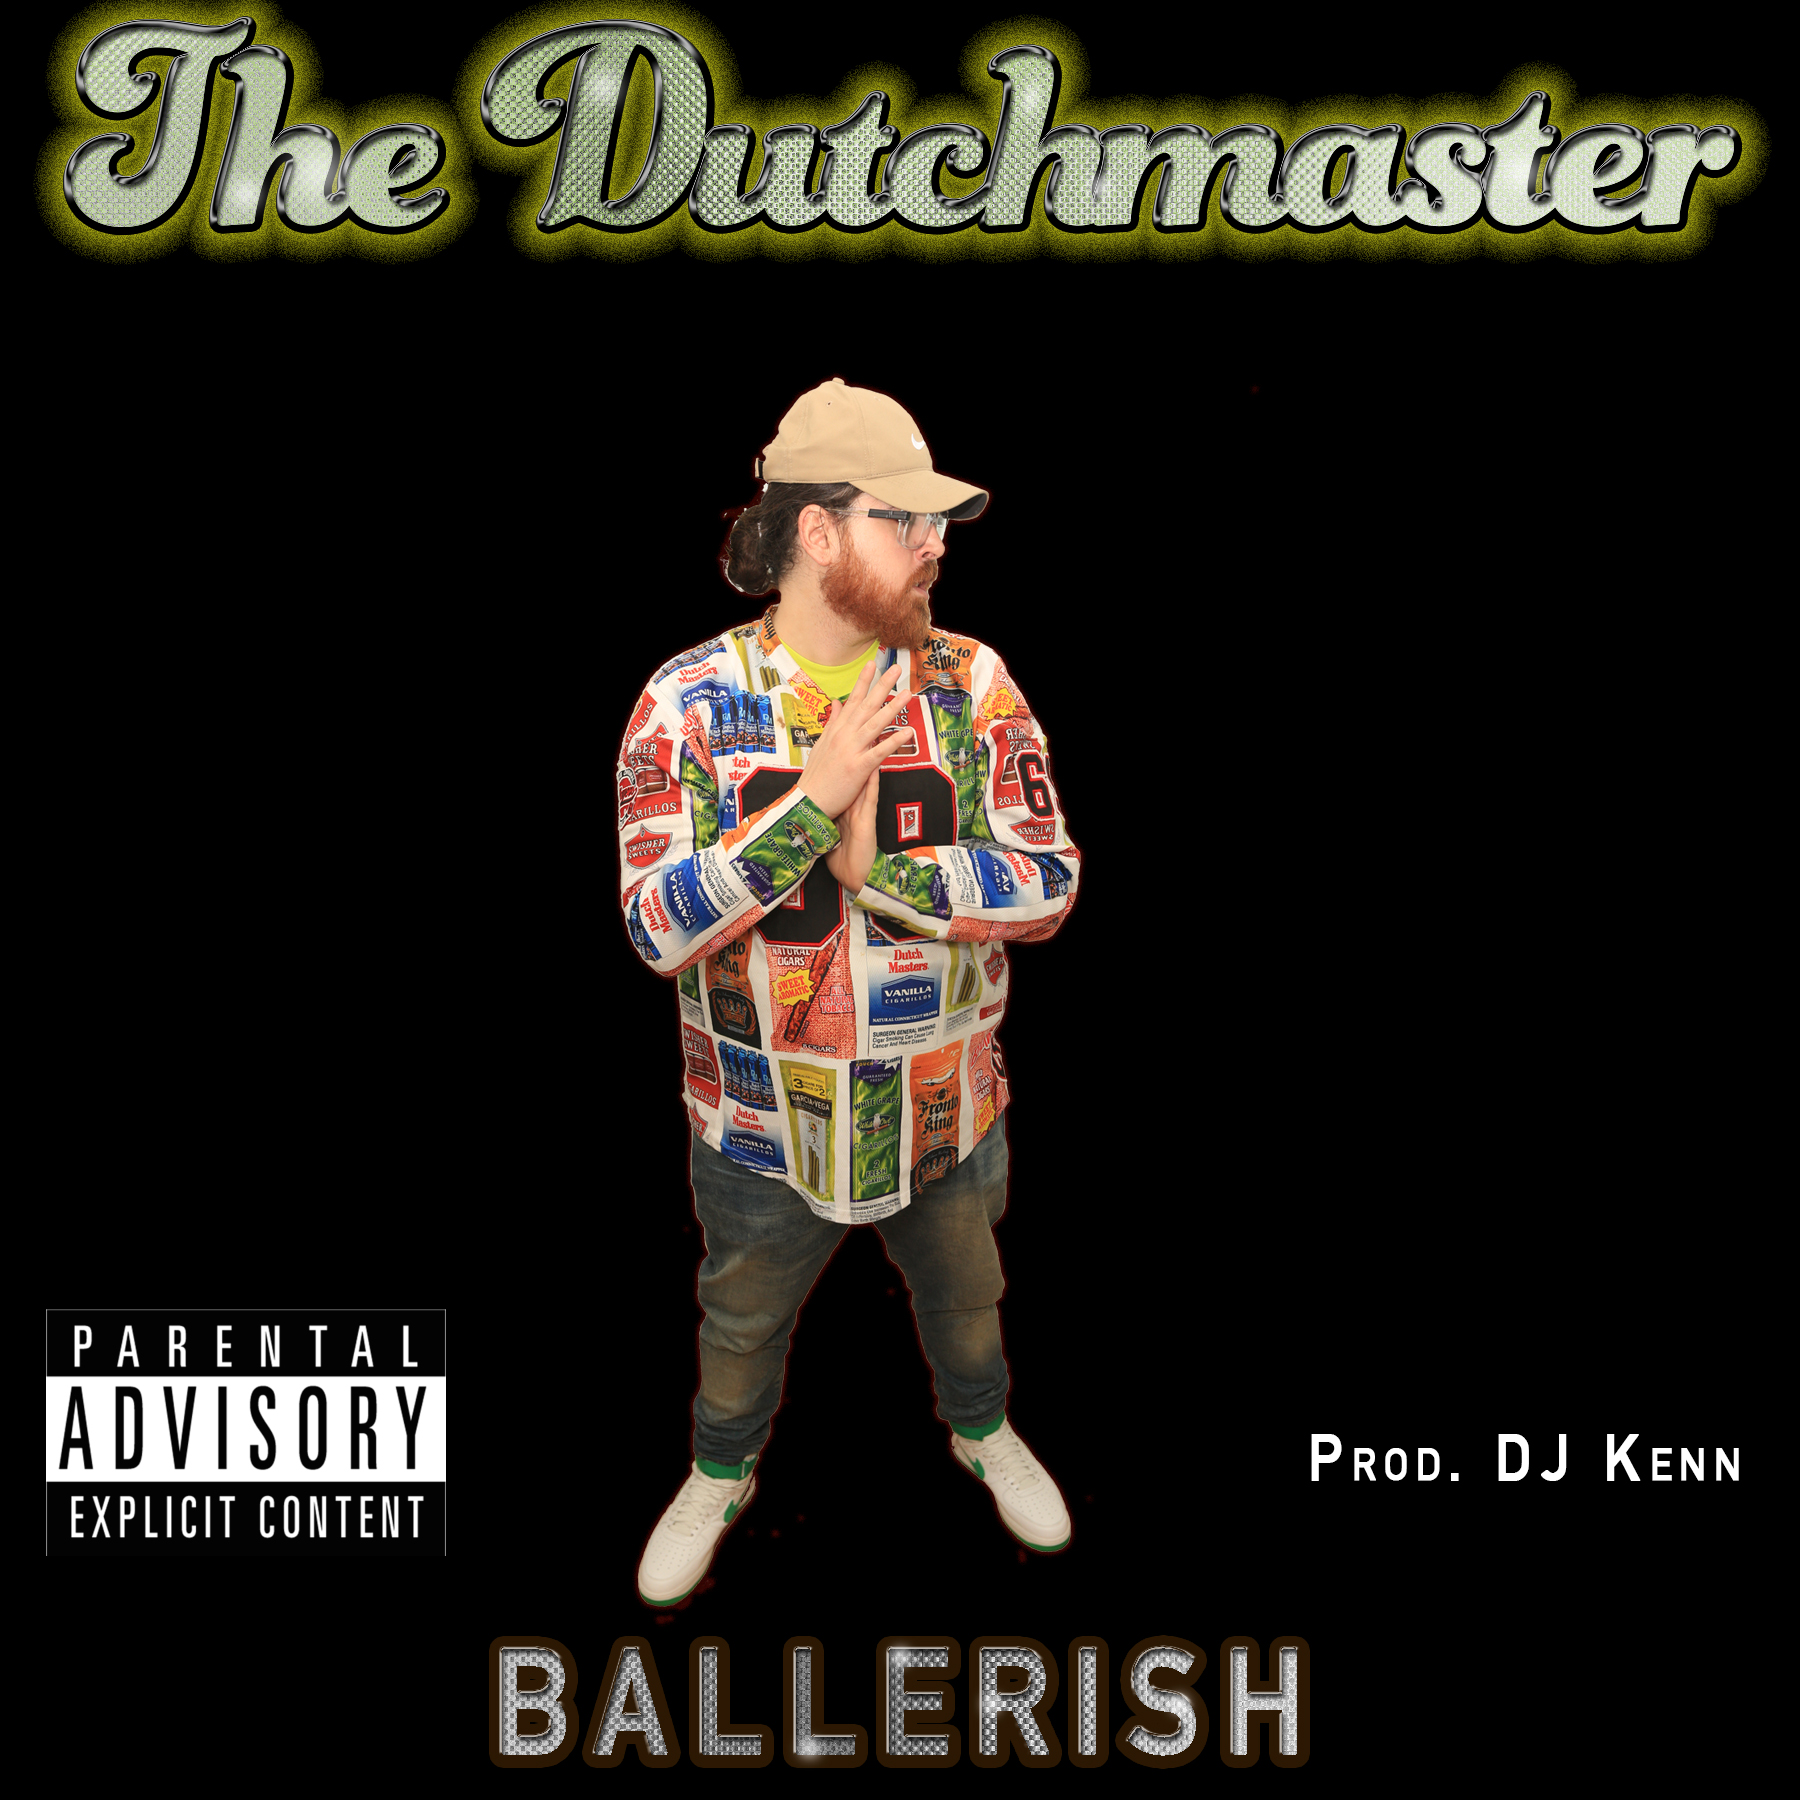 The Dutchmaster Ballerish Artwork